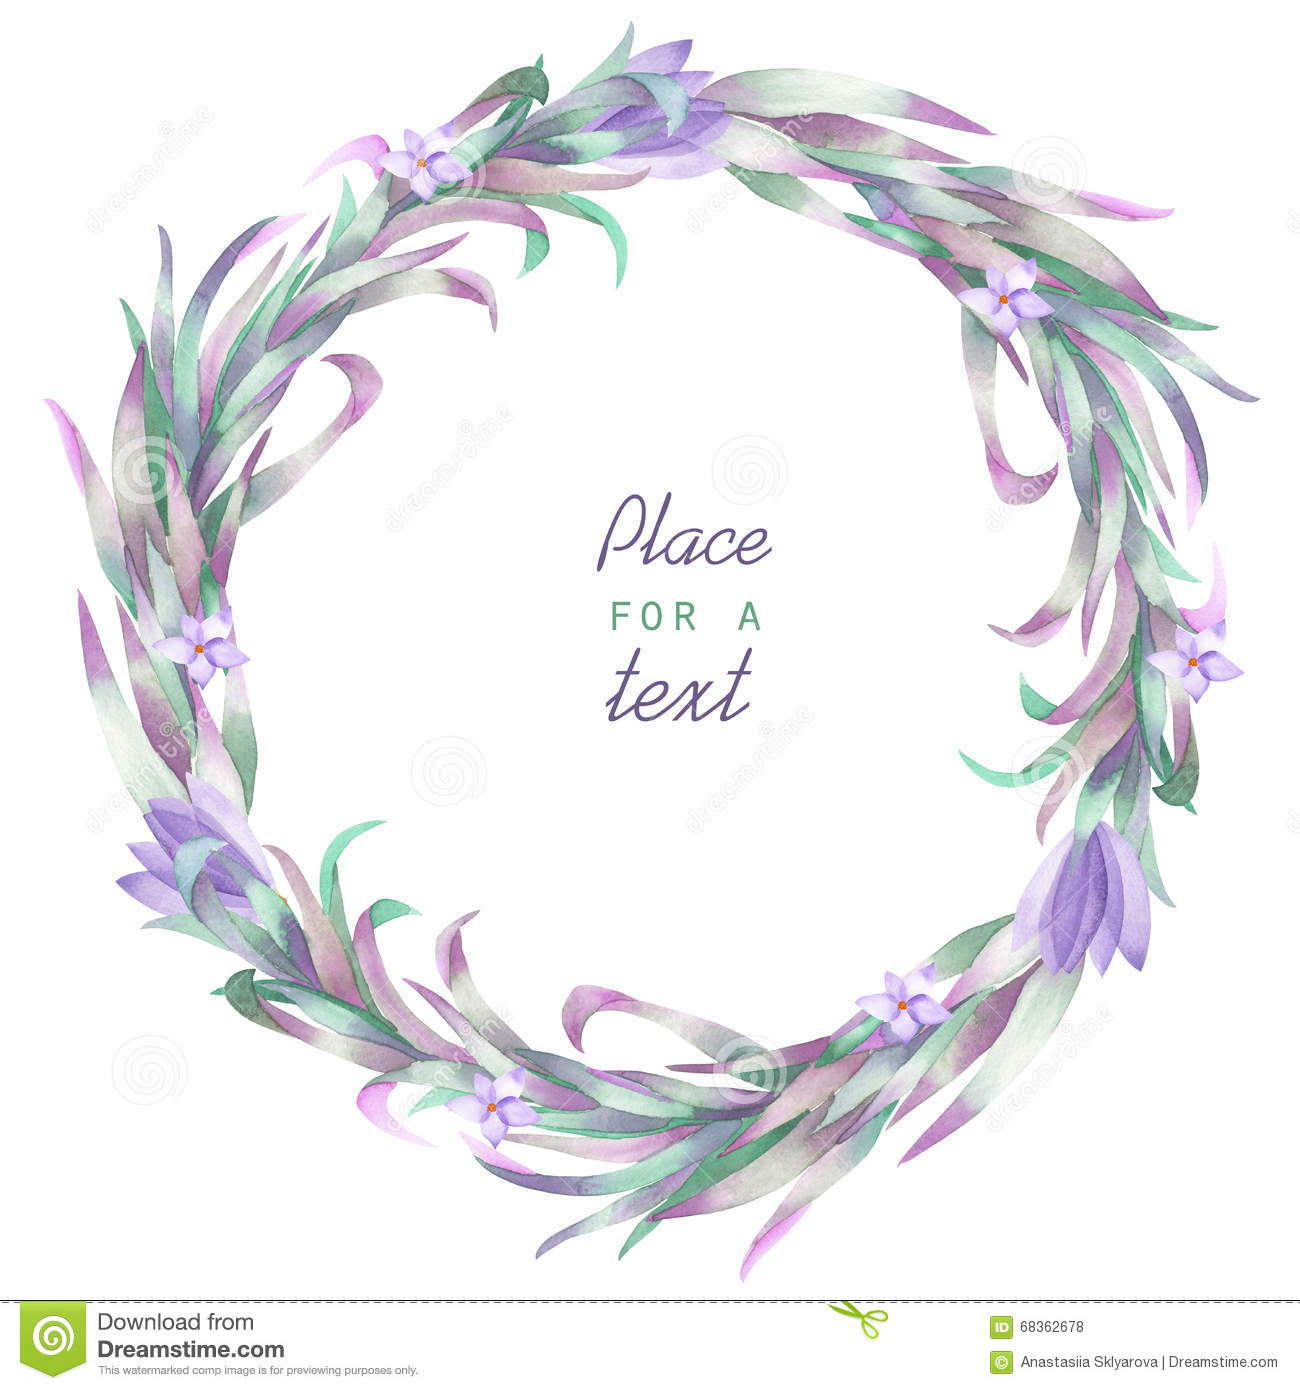 A Circle Frame Wreath Border With The Watercolor Crocus Flowers And Branches